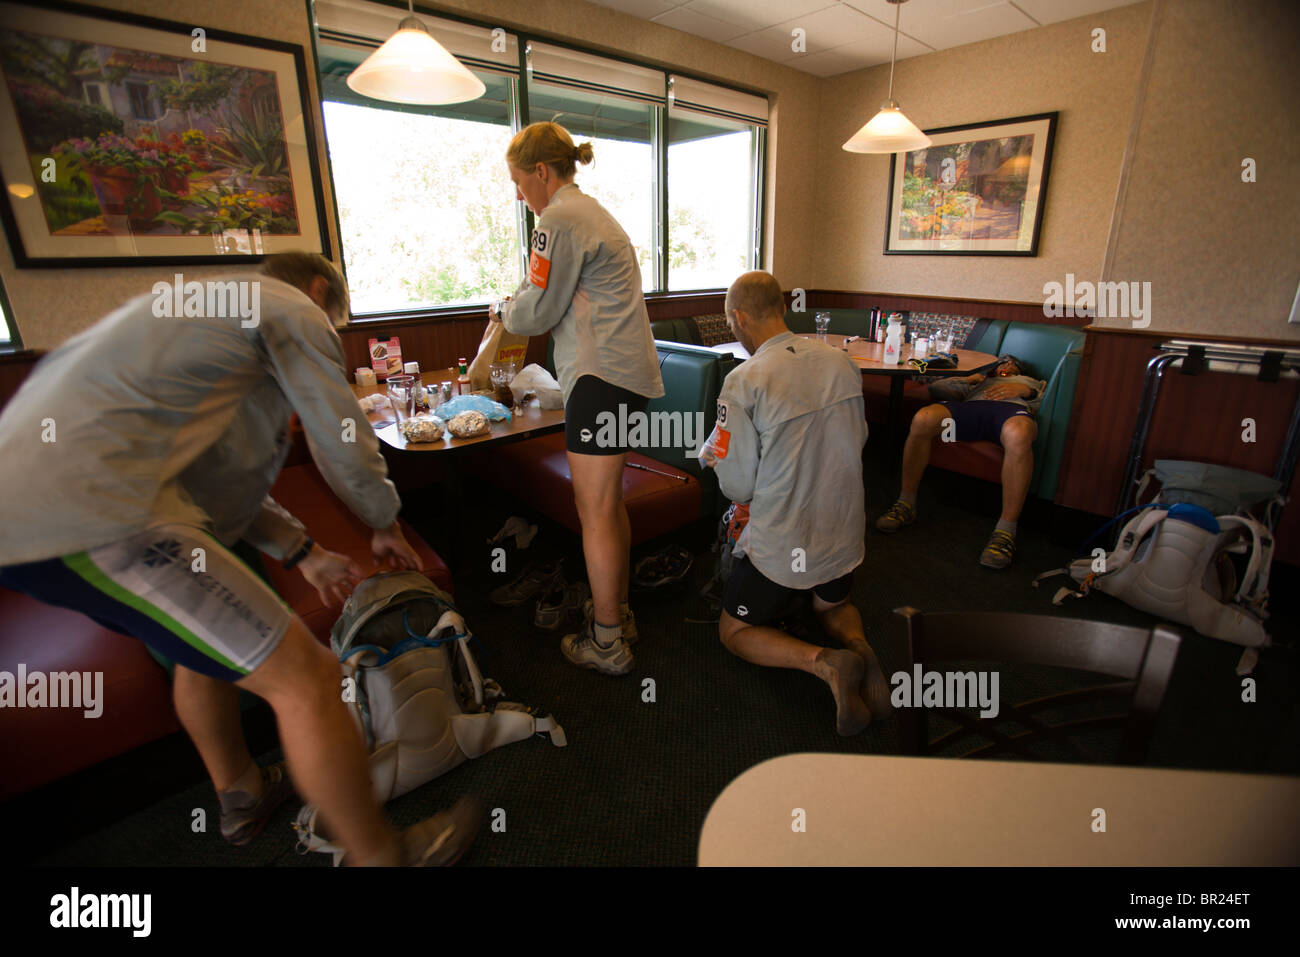 Team members getting geared up at a restaurant during an adventure race near Moab, Utah. - Stock Image